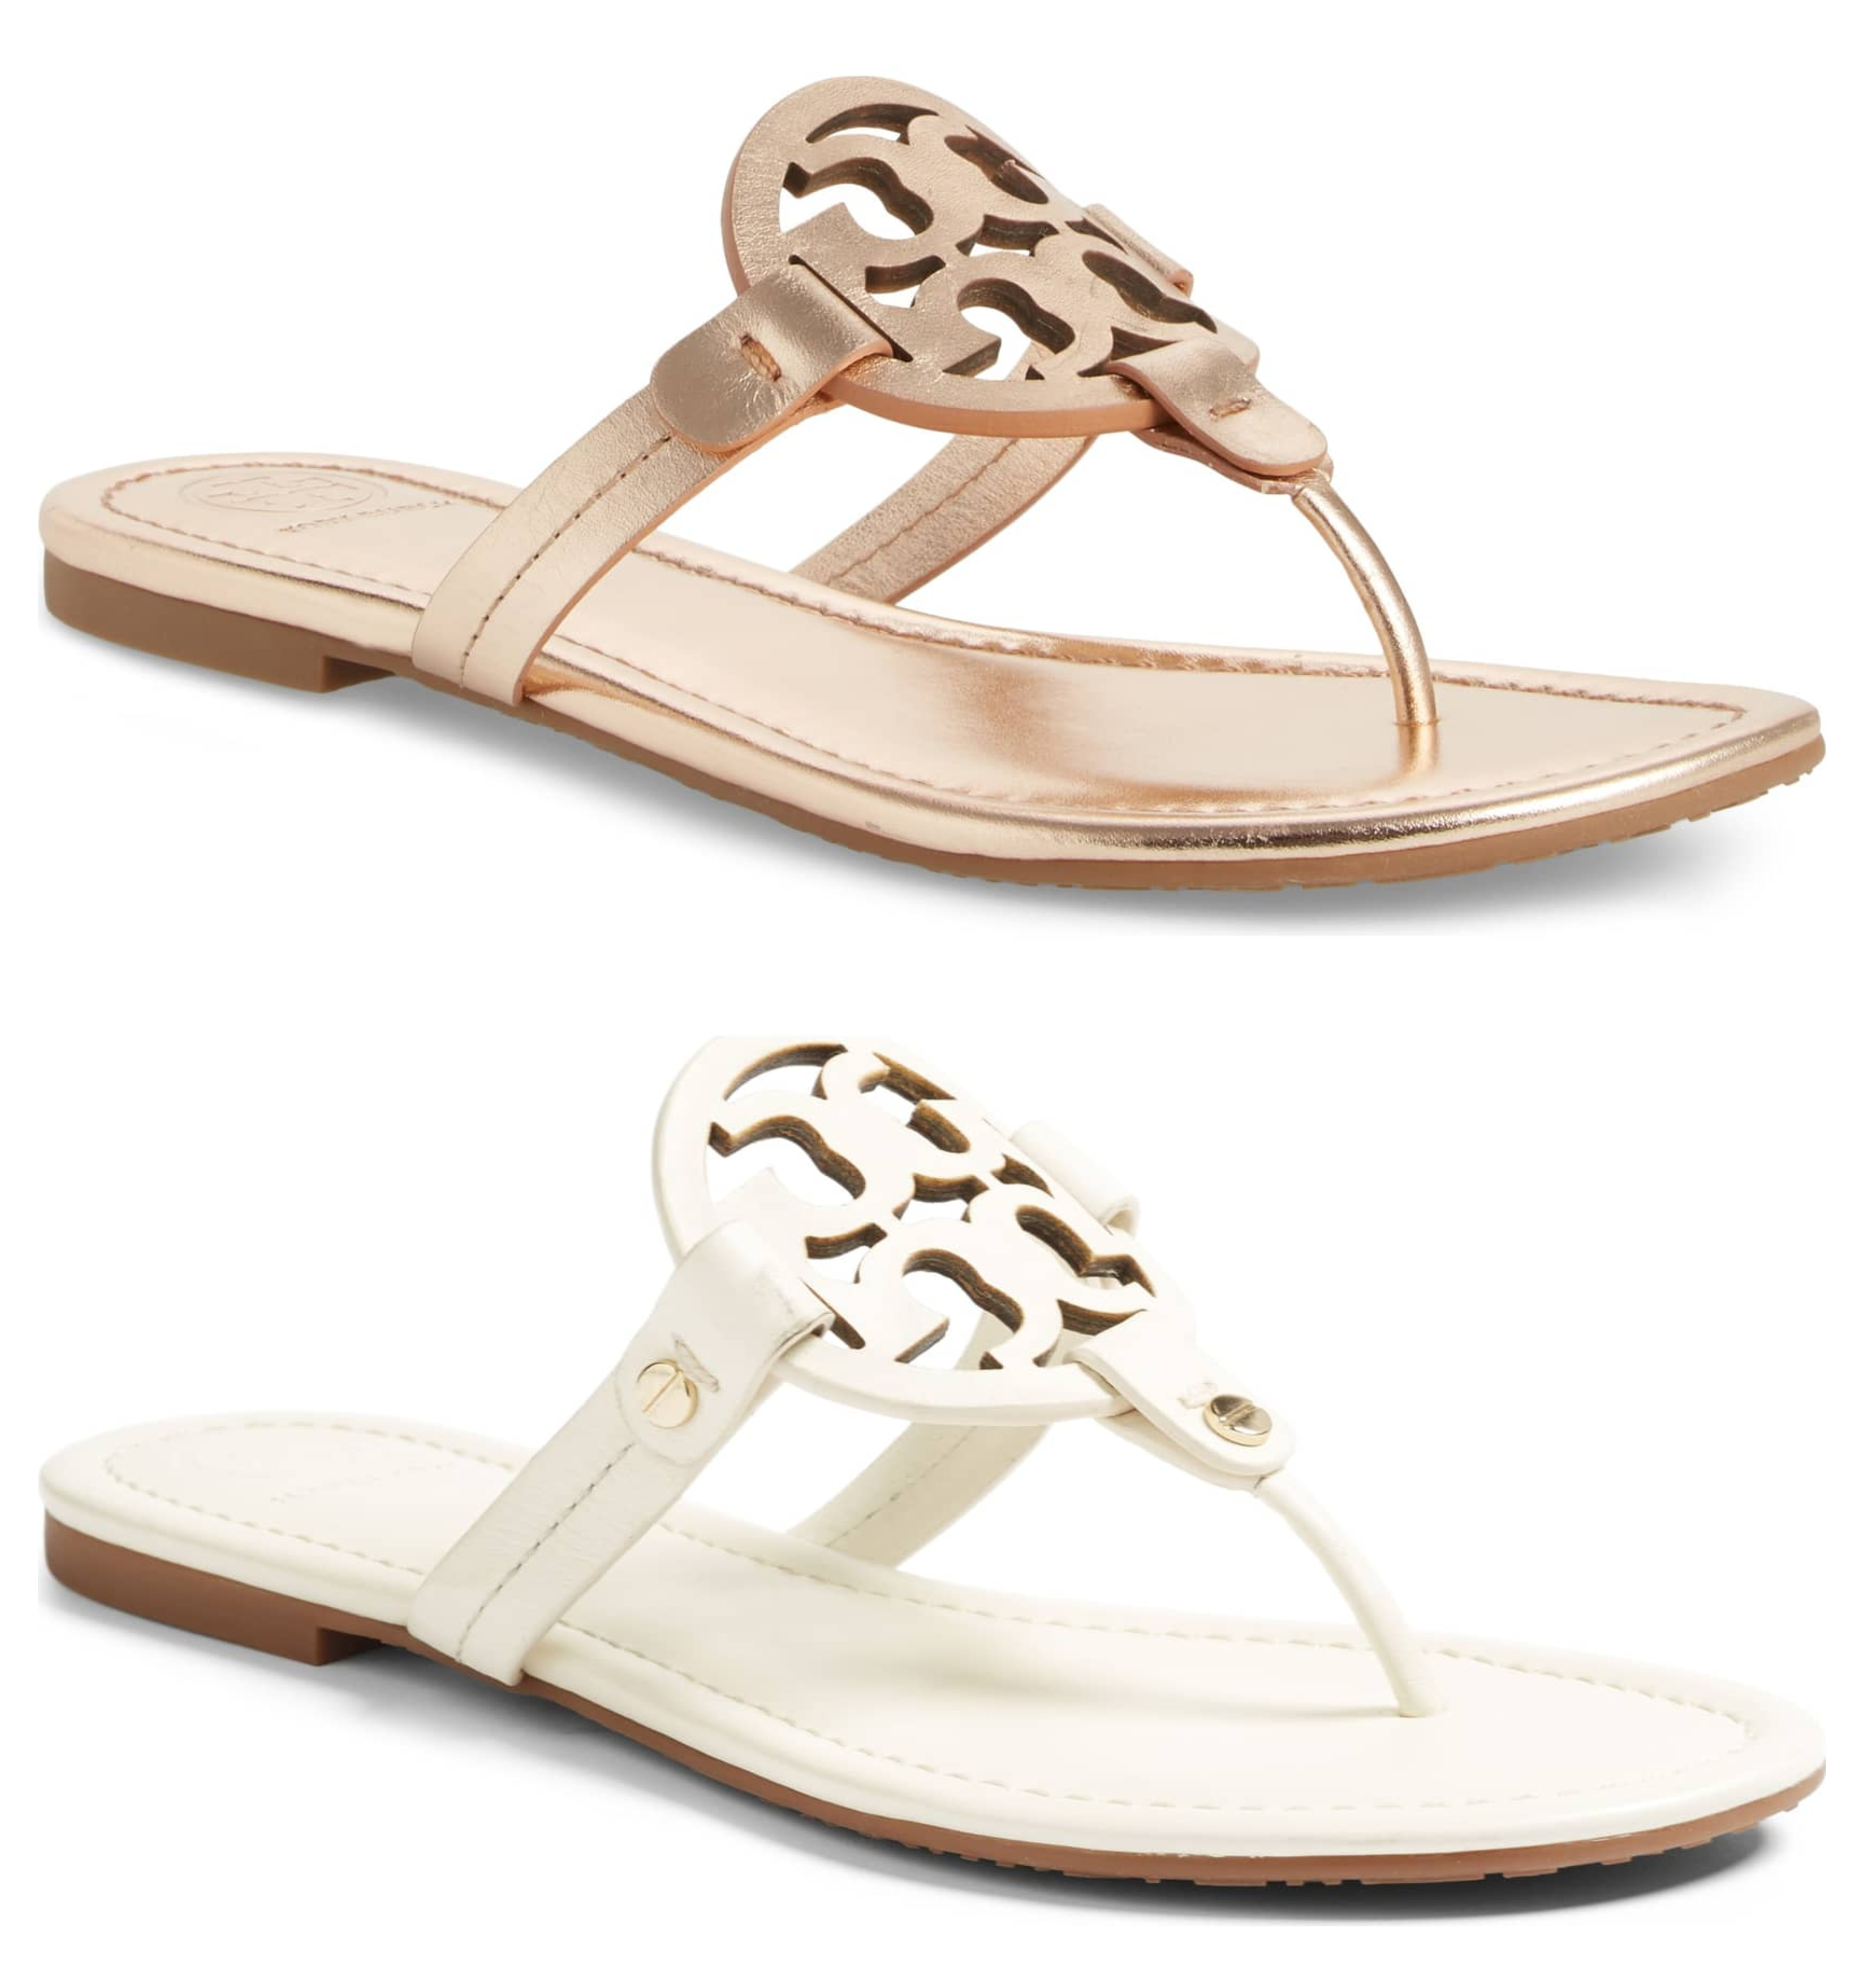 9ae4ad3cfcf Nordstrom  MORE Tory Burch Miller Sandals on Sale! – Wear It For Less